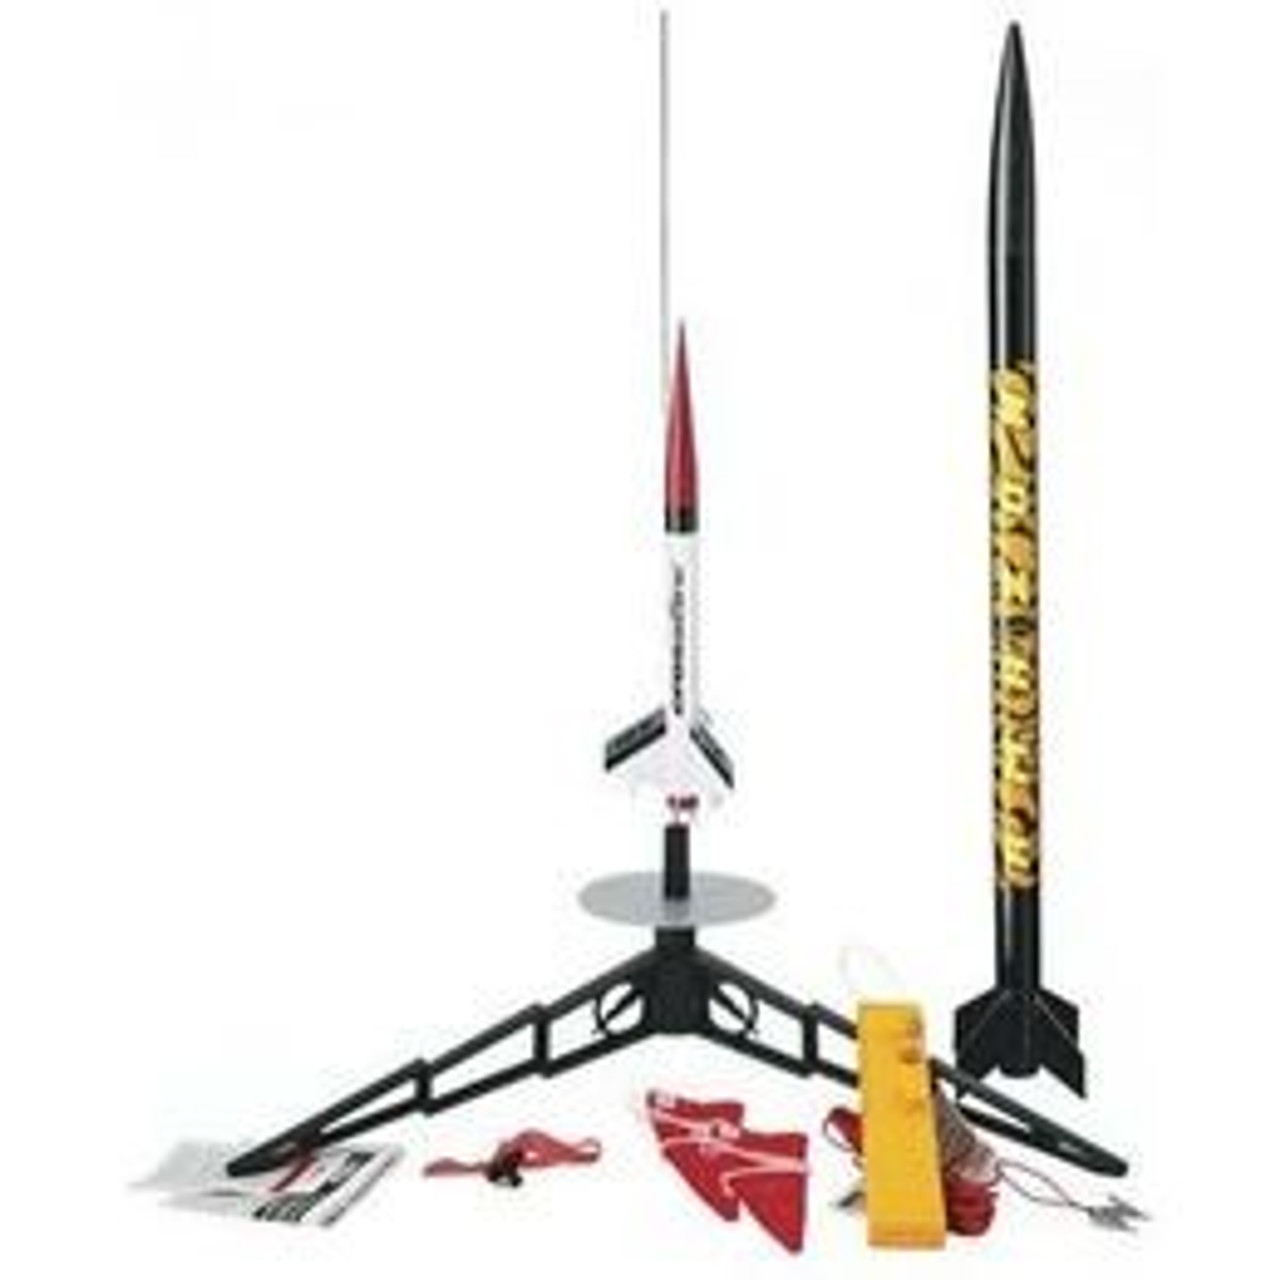 EST-1469  Tandem-X Model Rocket Launch Set (2 Kits Skill Level E2X)